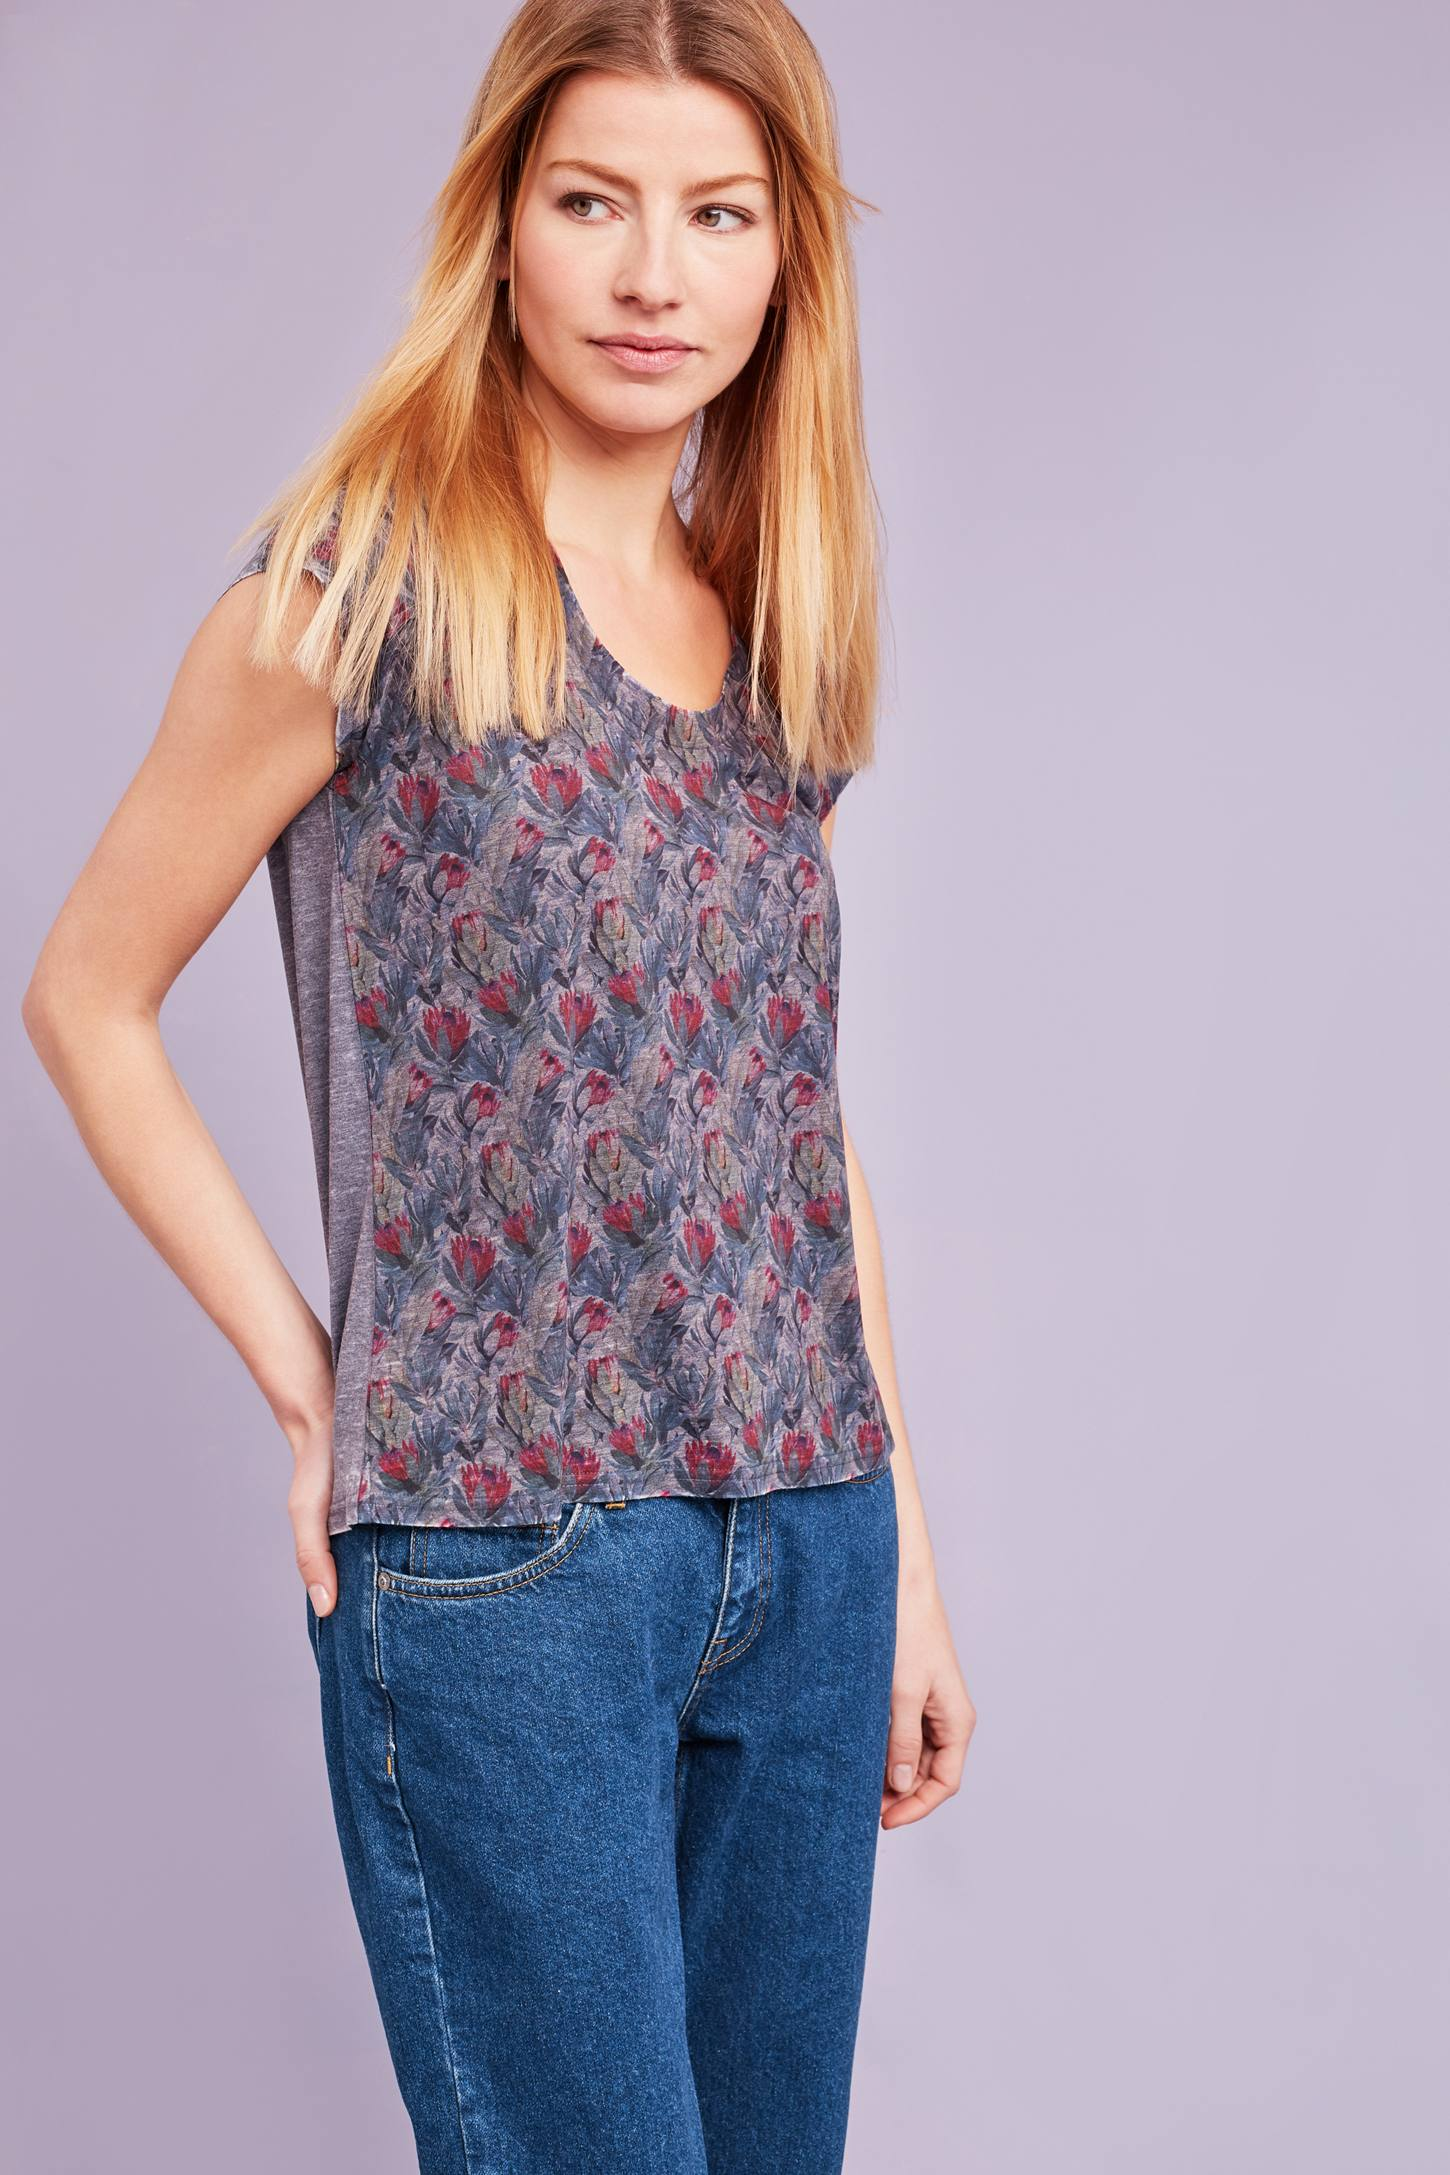 Slide View: 1: Melodie Floral T-Shirt, Grey